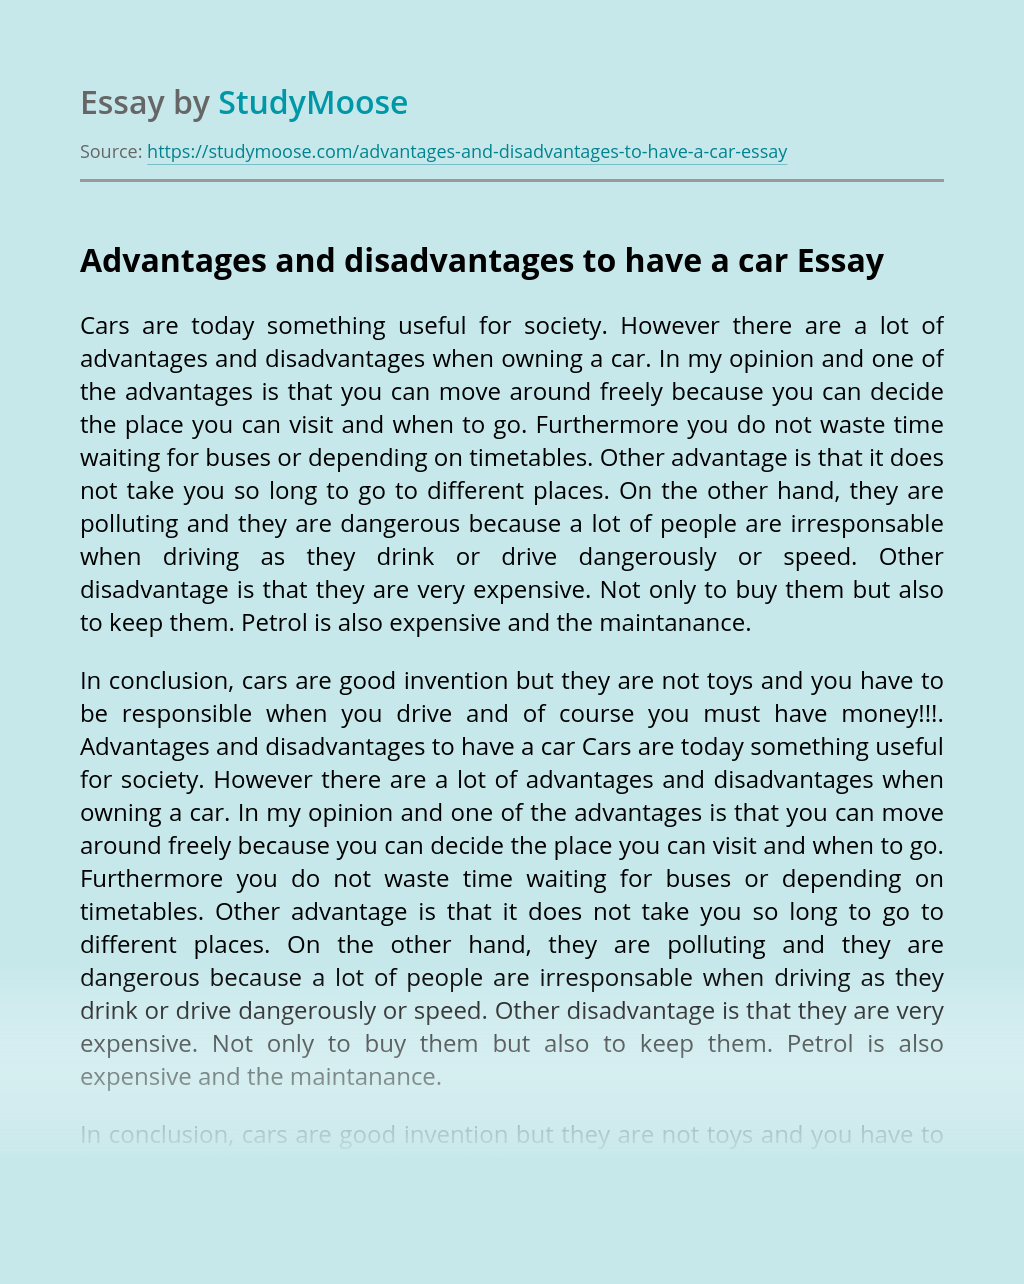 Advantages and disadvantages to have a car